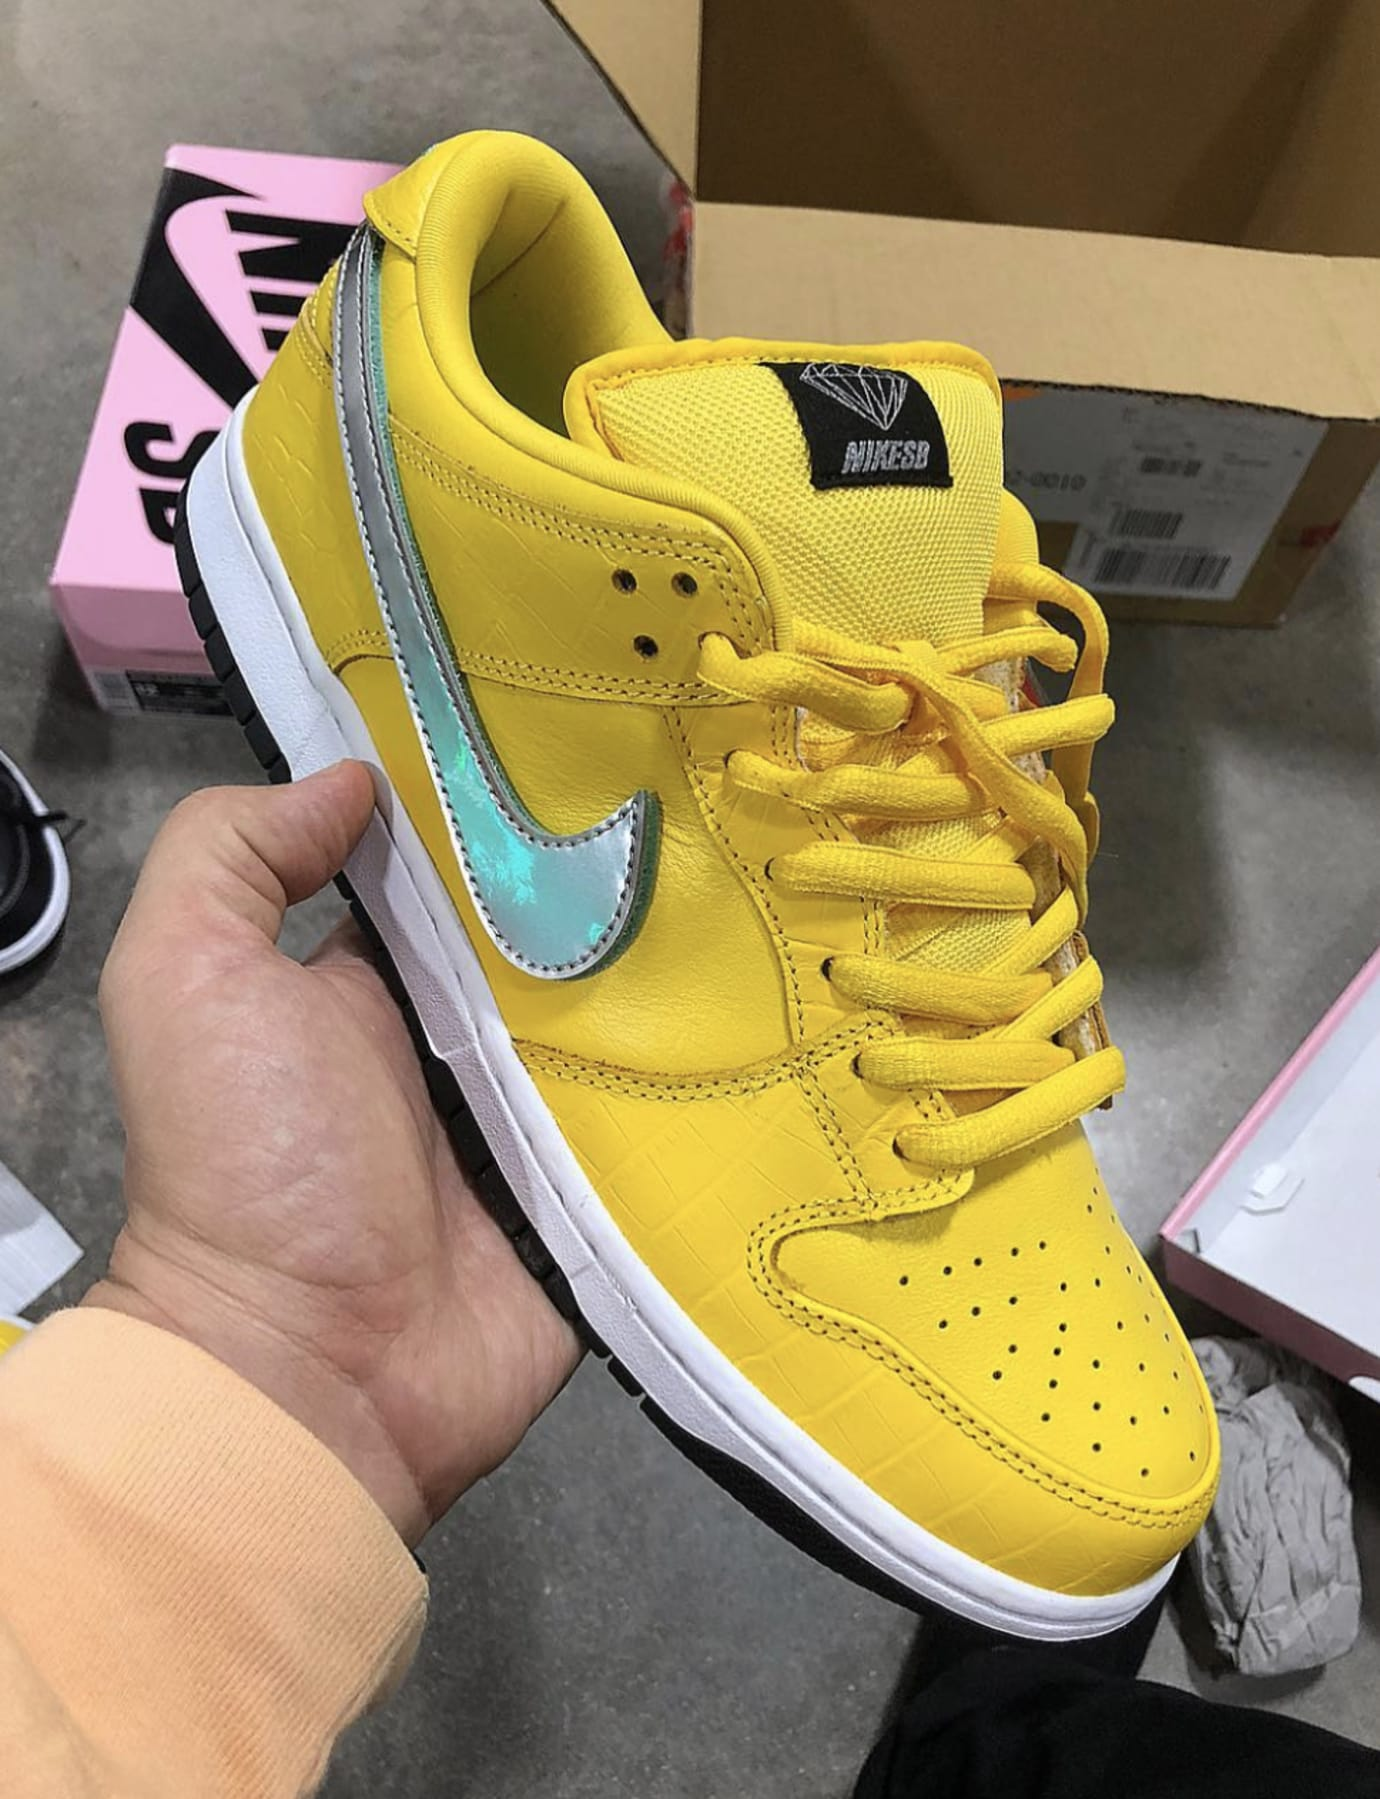 new arrivals b802e cc5e4 Diamond Supply Co. x Nike SB Dunk Low Canary Yellow 1